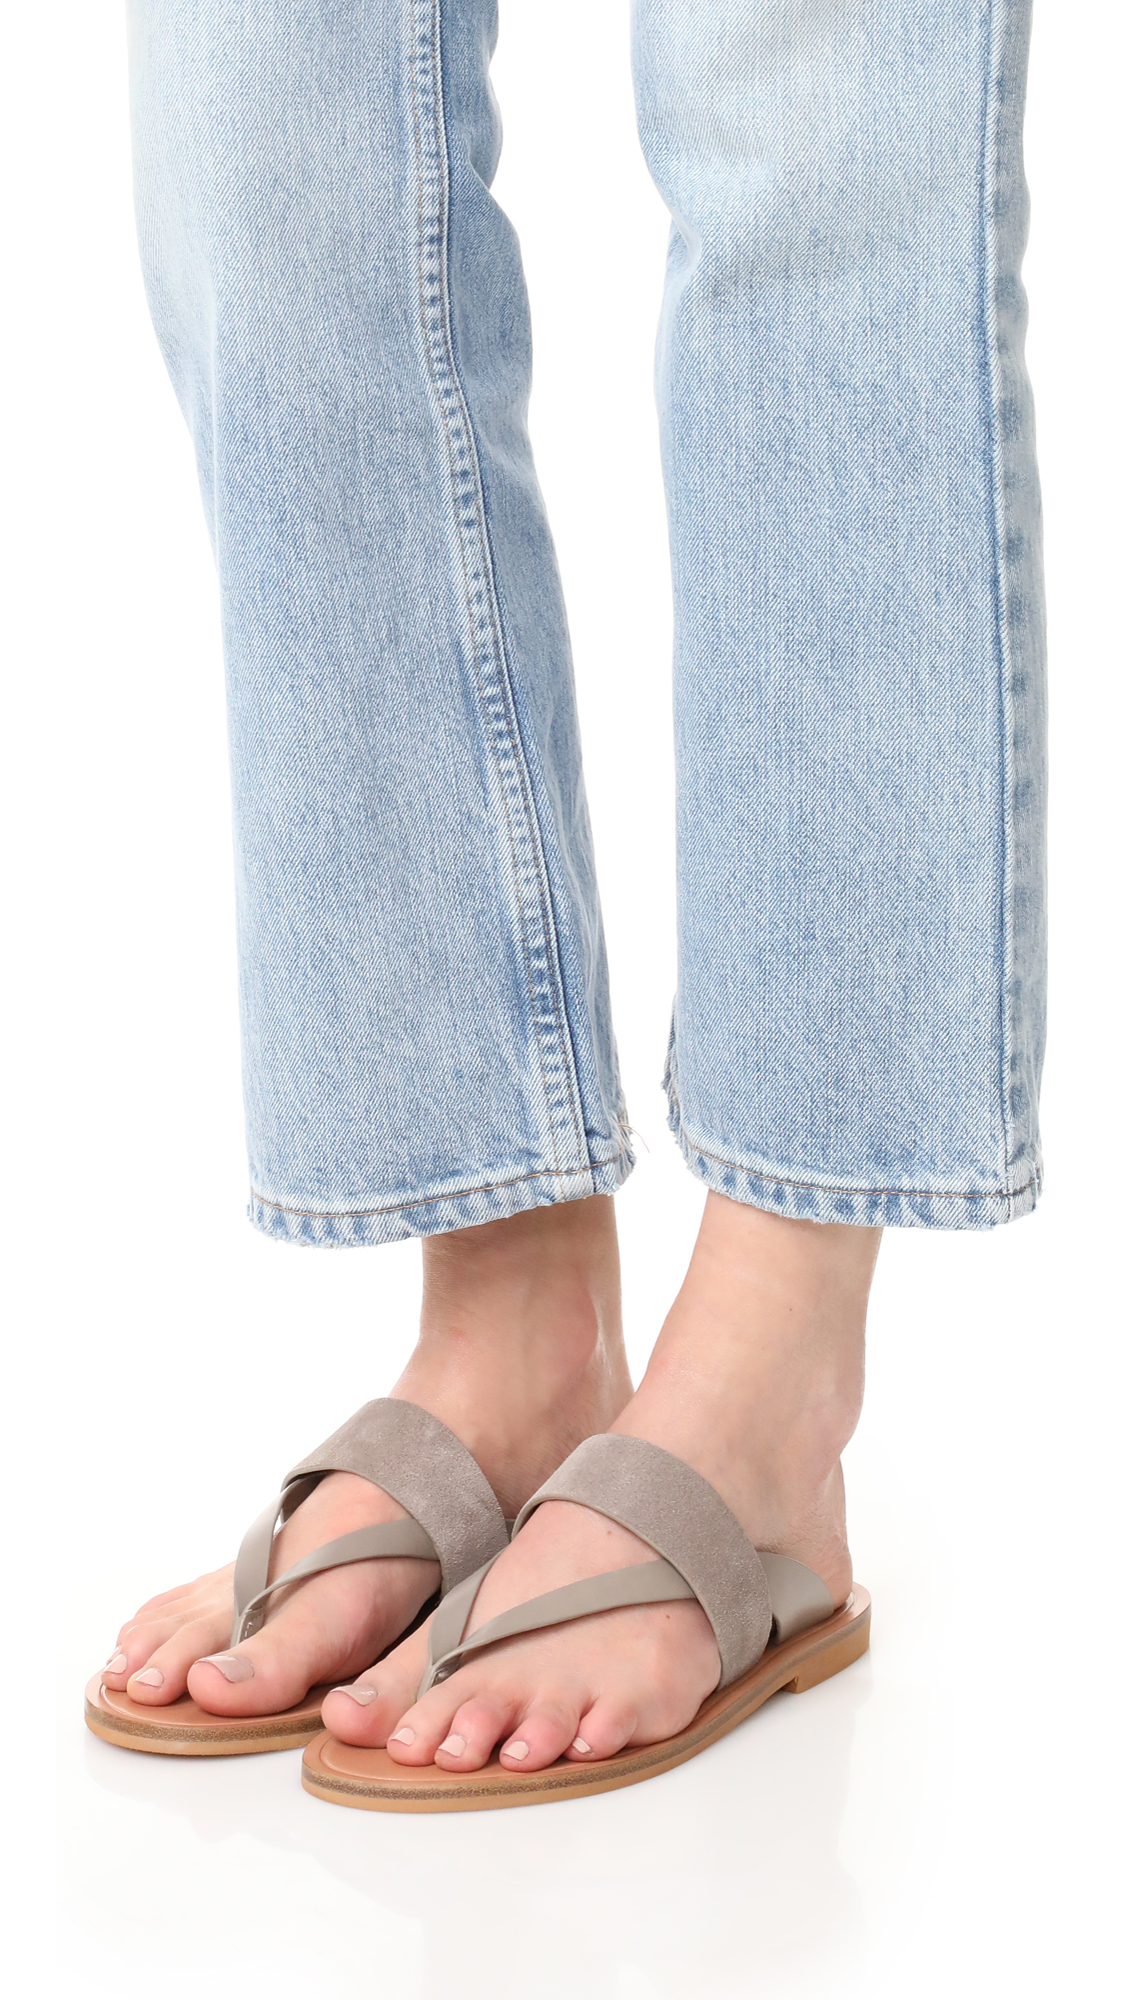 Vince Tess Thong Sandals clearance low cost buy online new cheap classic 2014 new for sale outlet sale online fDSqG